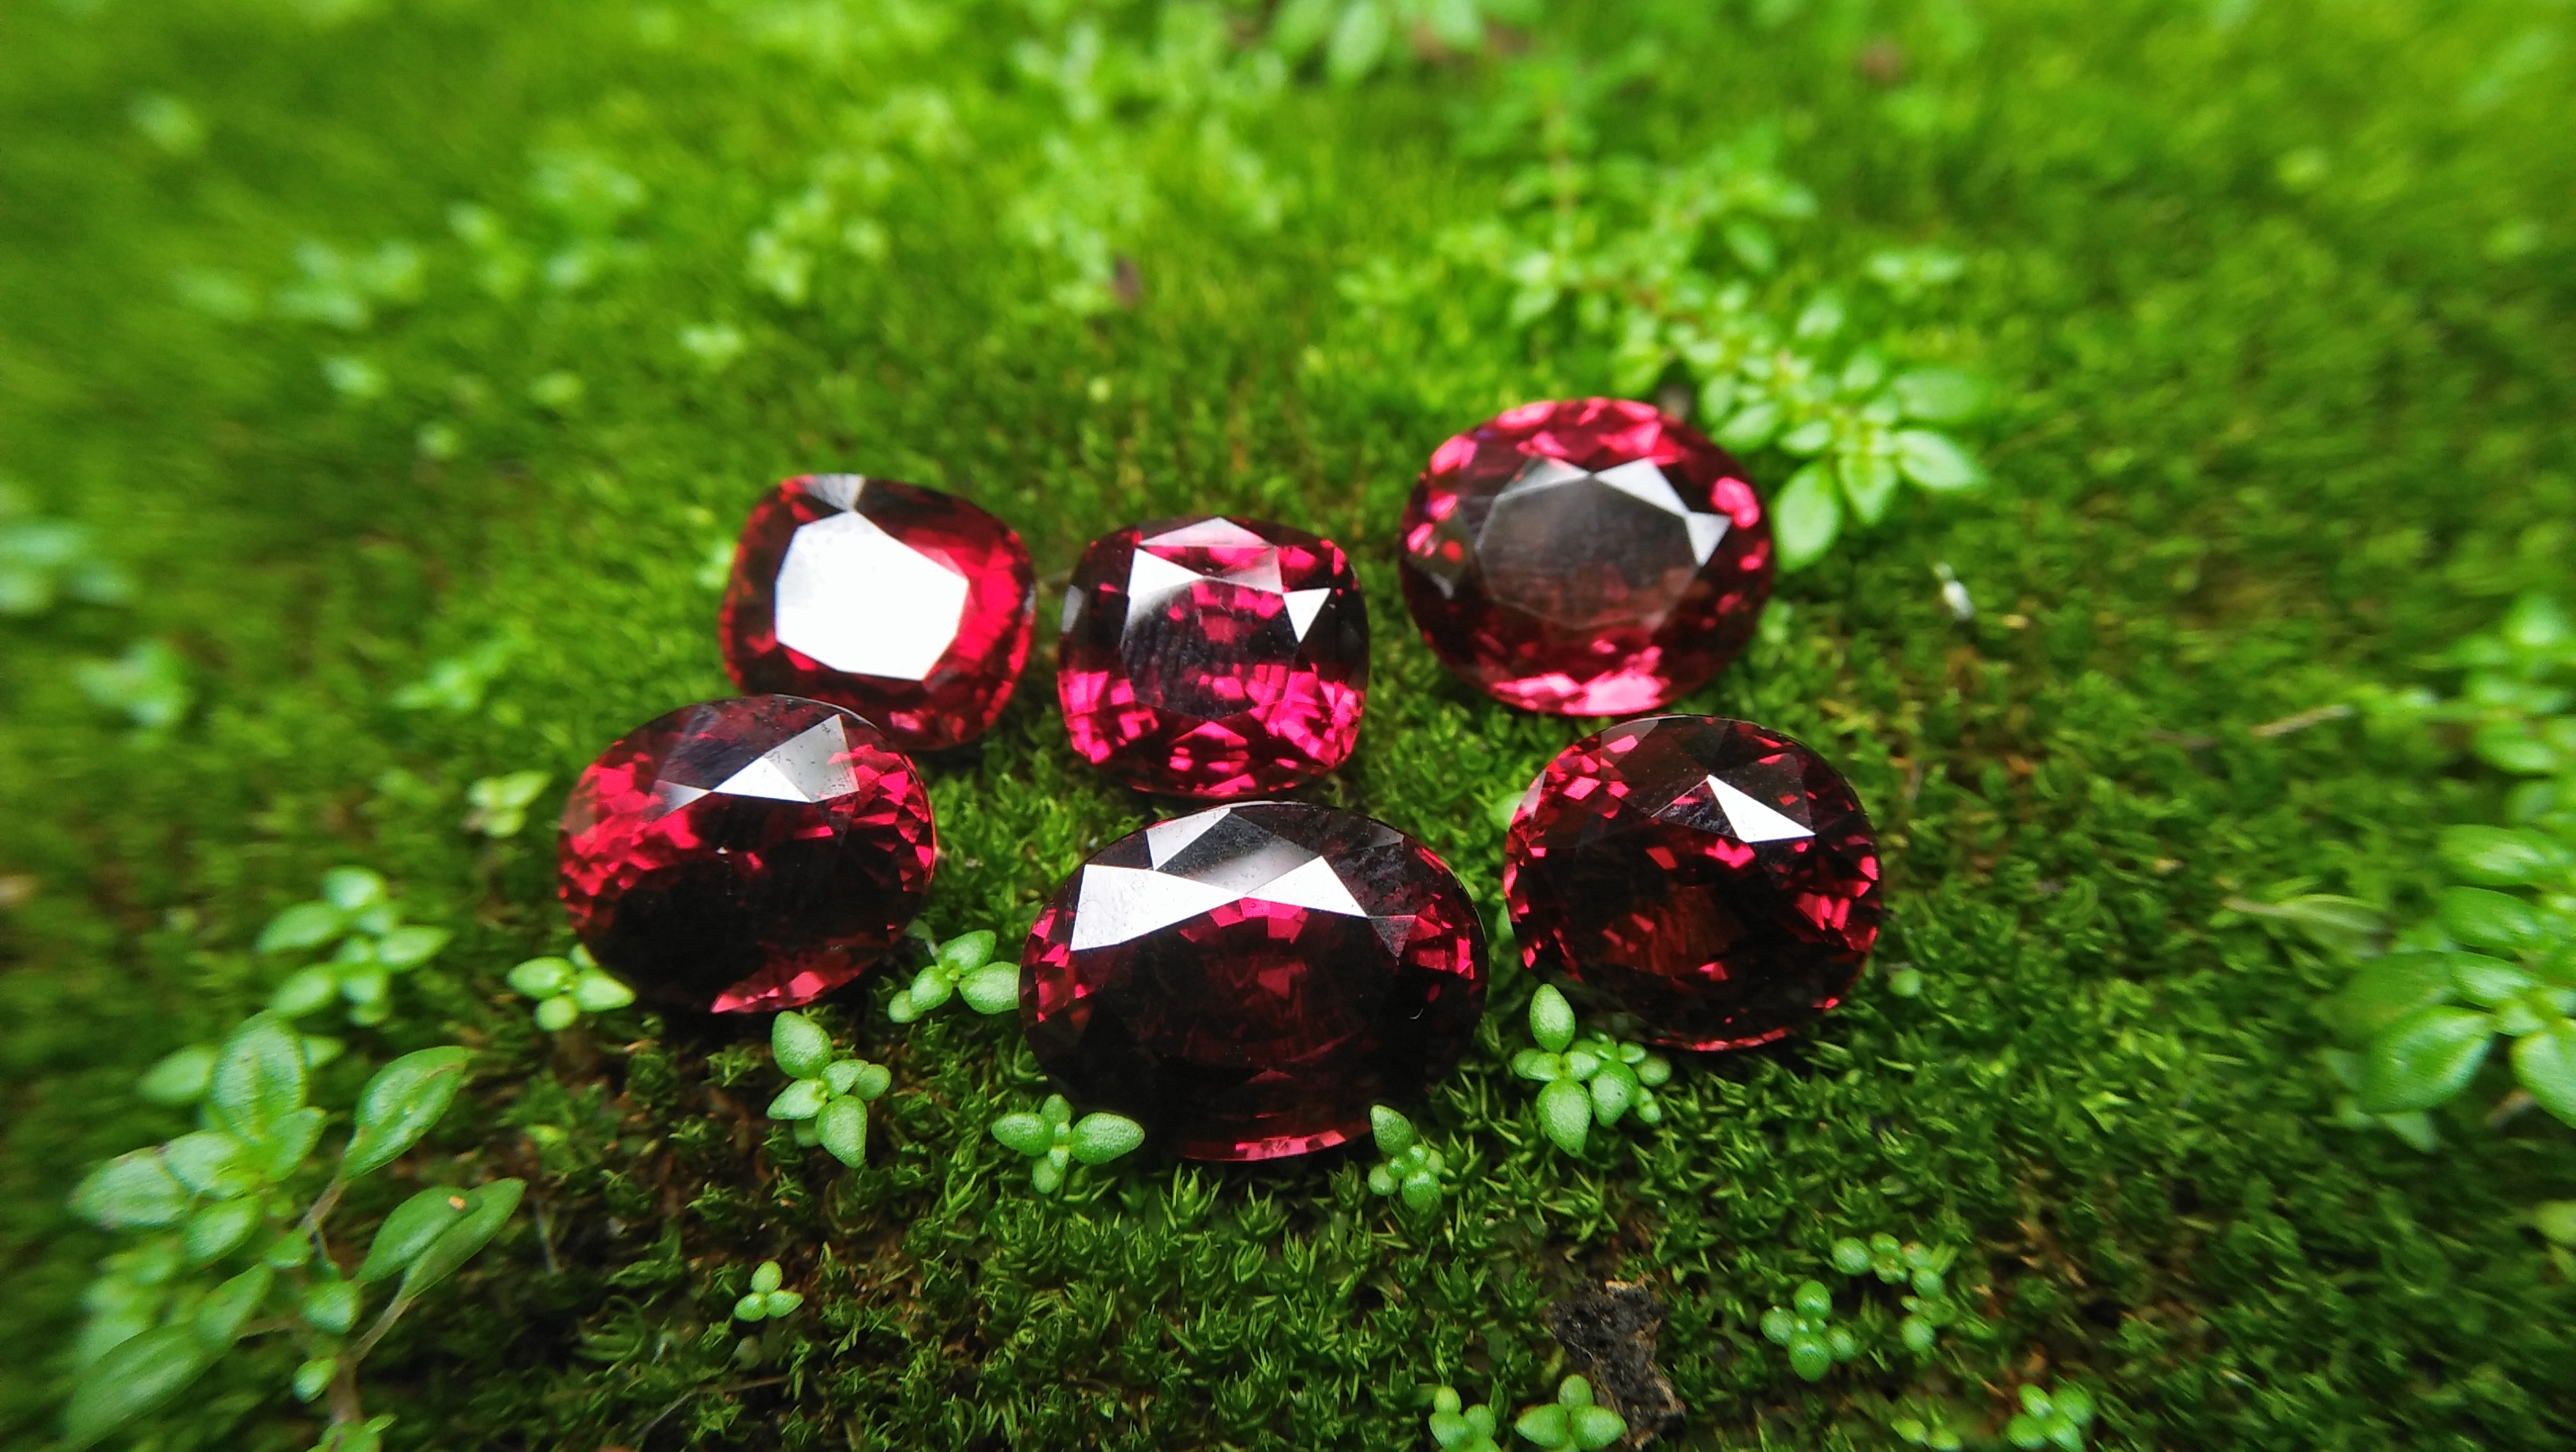 Ceylon Natural Rhodolite Garnets Dimension: 9.4mm x 8.2mm x 7.6mm/ 9.6mm x 8.8mm x 6.8mm 10mm x 8.7mm x 6.5mm/ 10.5mm x 9.4mm x 6.8mm 13mm x 9.8mm x 5.9mm/ 11.9mm / 10mm x 4.8mm Weights: 5.30cts/ 5.45cts/ 5.60cts/ 6.20cts/ 6.80cts/ 4.85cts Mineral: City of gem Ratnapurea Sri Lanka Shapes: Ovel and Cution Colour: Pinkish Red Pieces: 6 Treatment: NO Treatment/Unheated/Natural